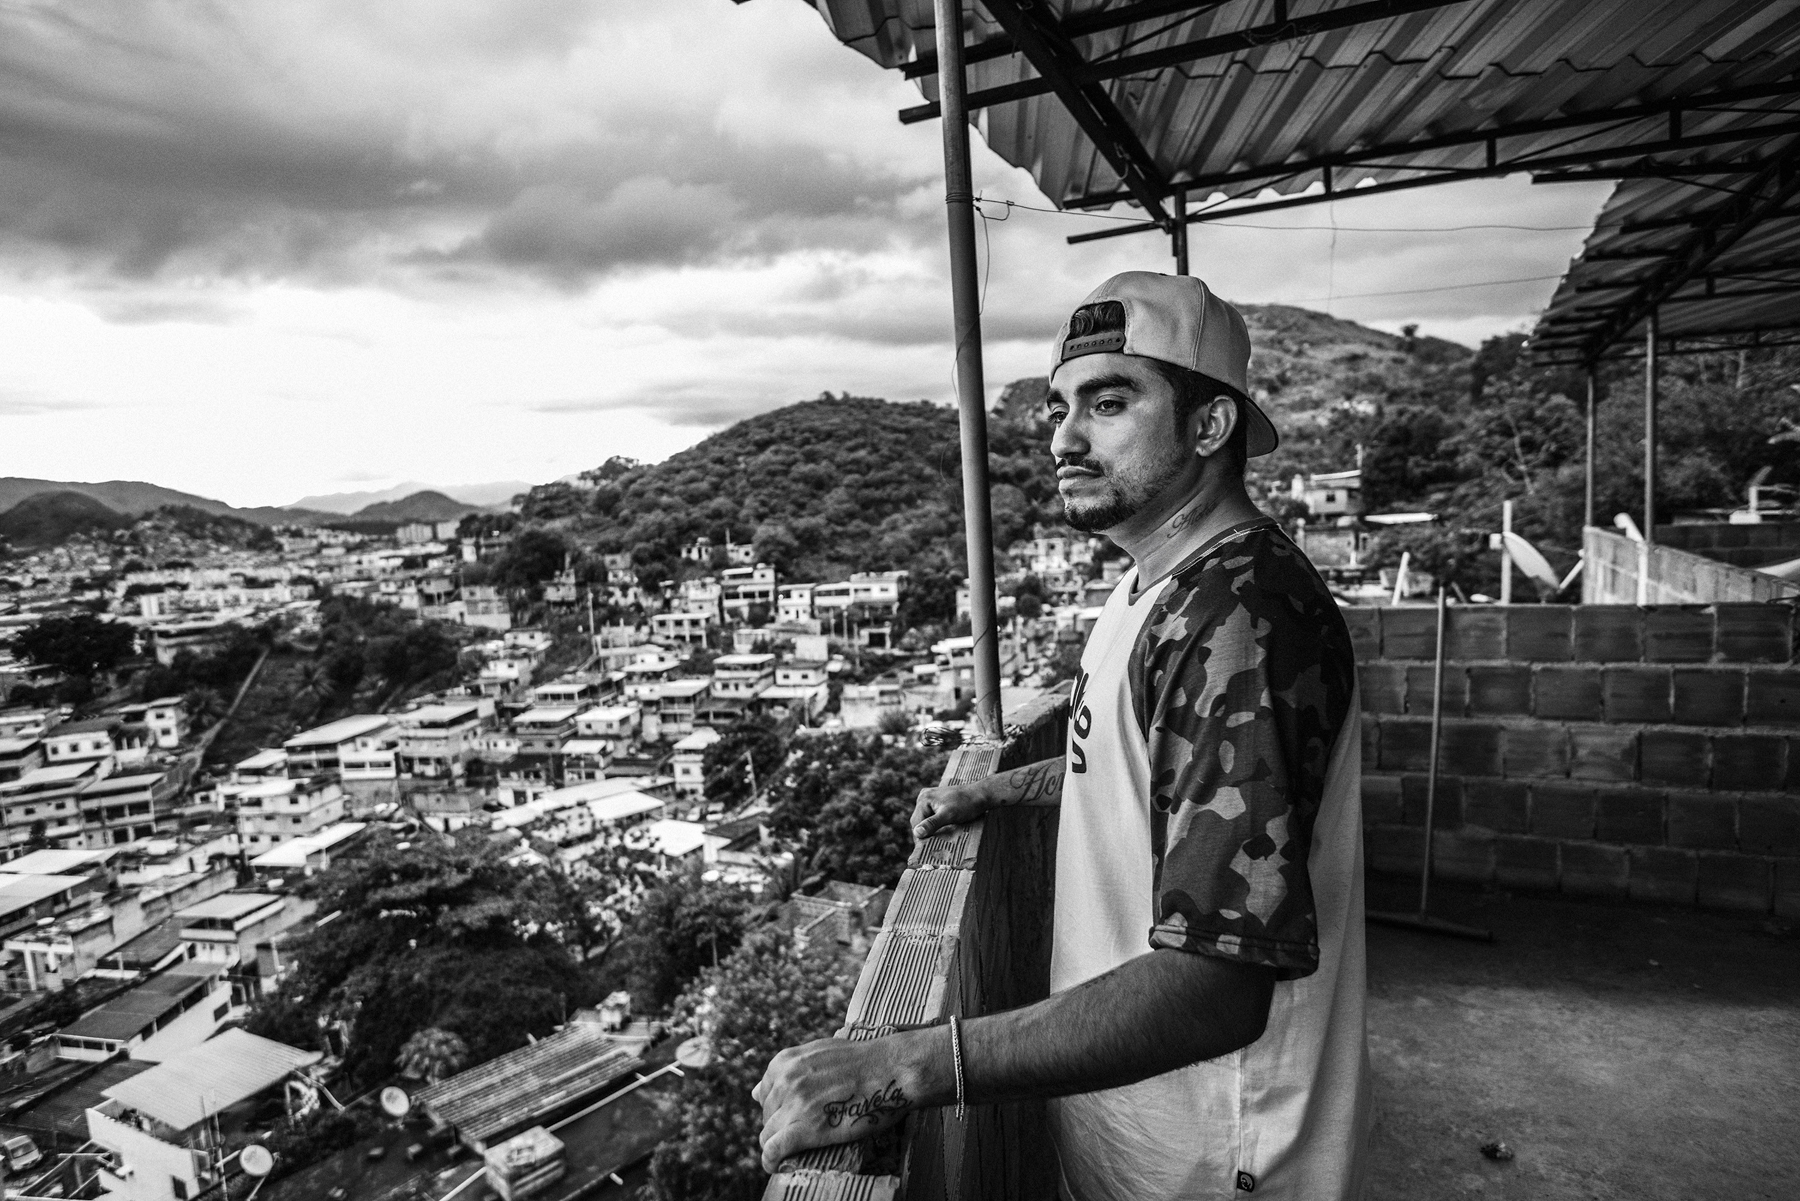 February 2015 - Rio de Janeiro, Brazil: Raul, one of the members of Papo Reto collective, with a general view of the Complexo do Alemao.